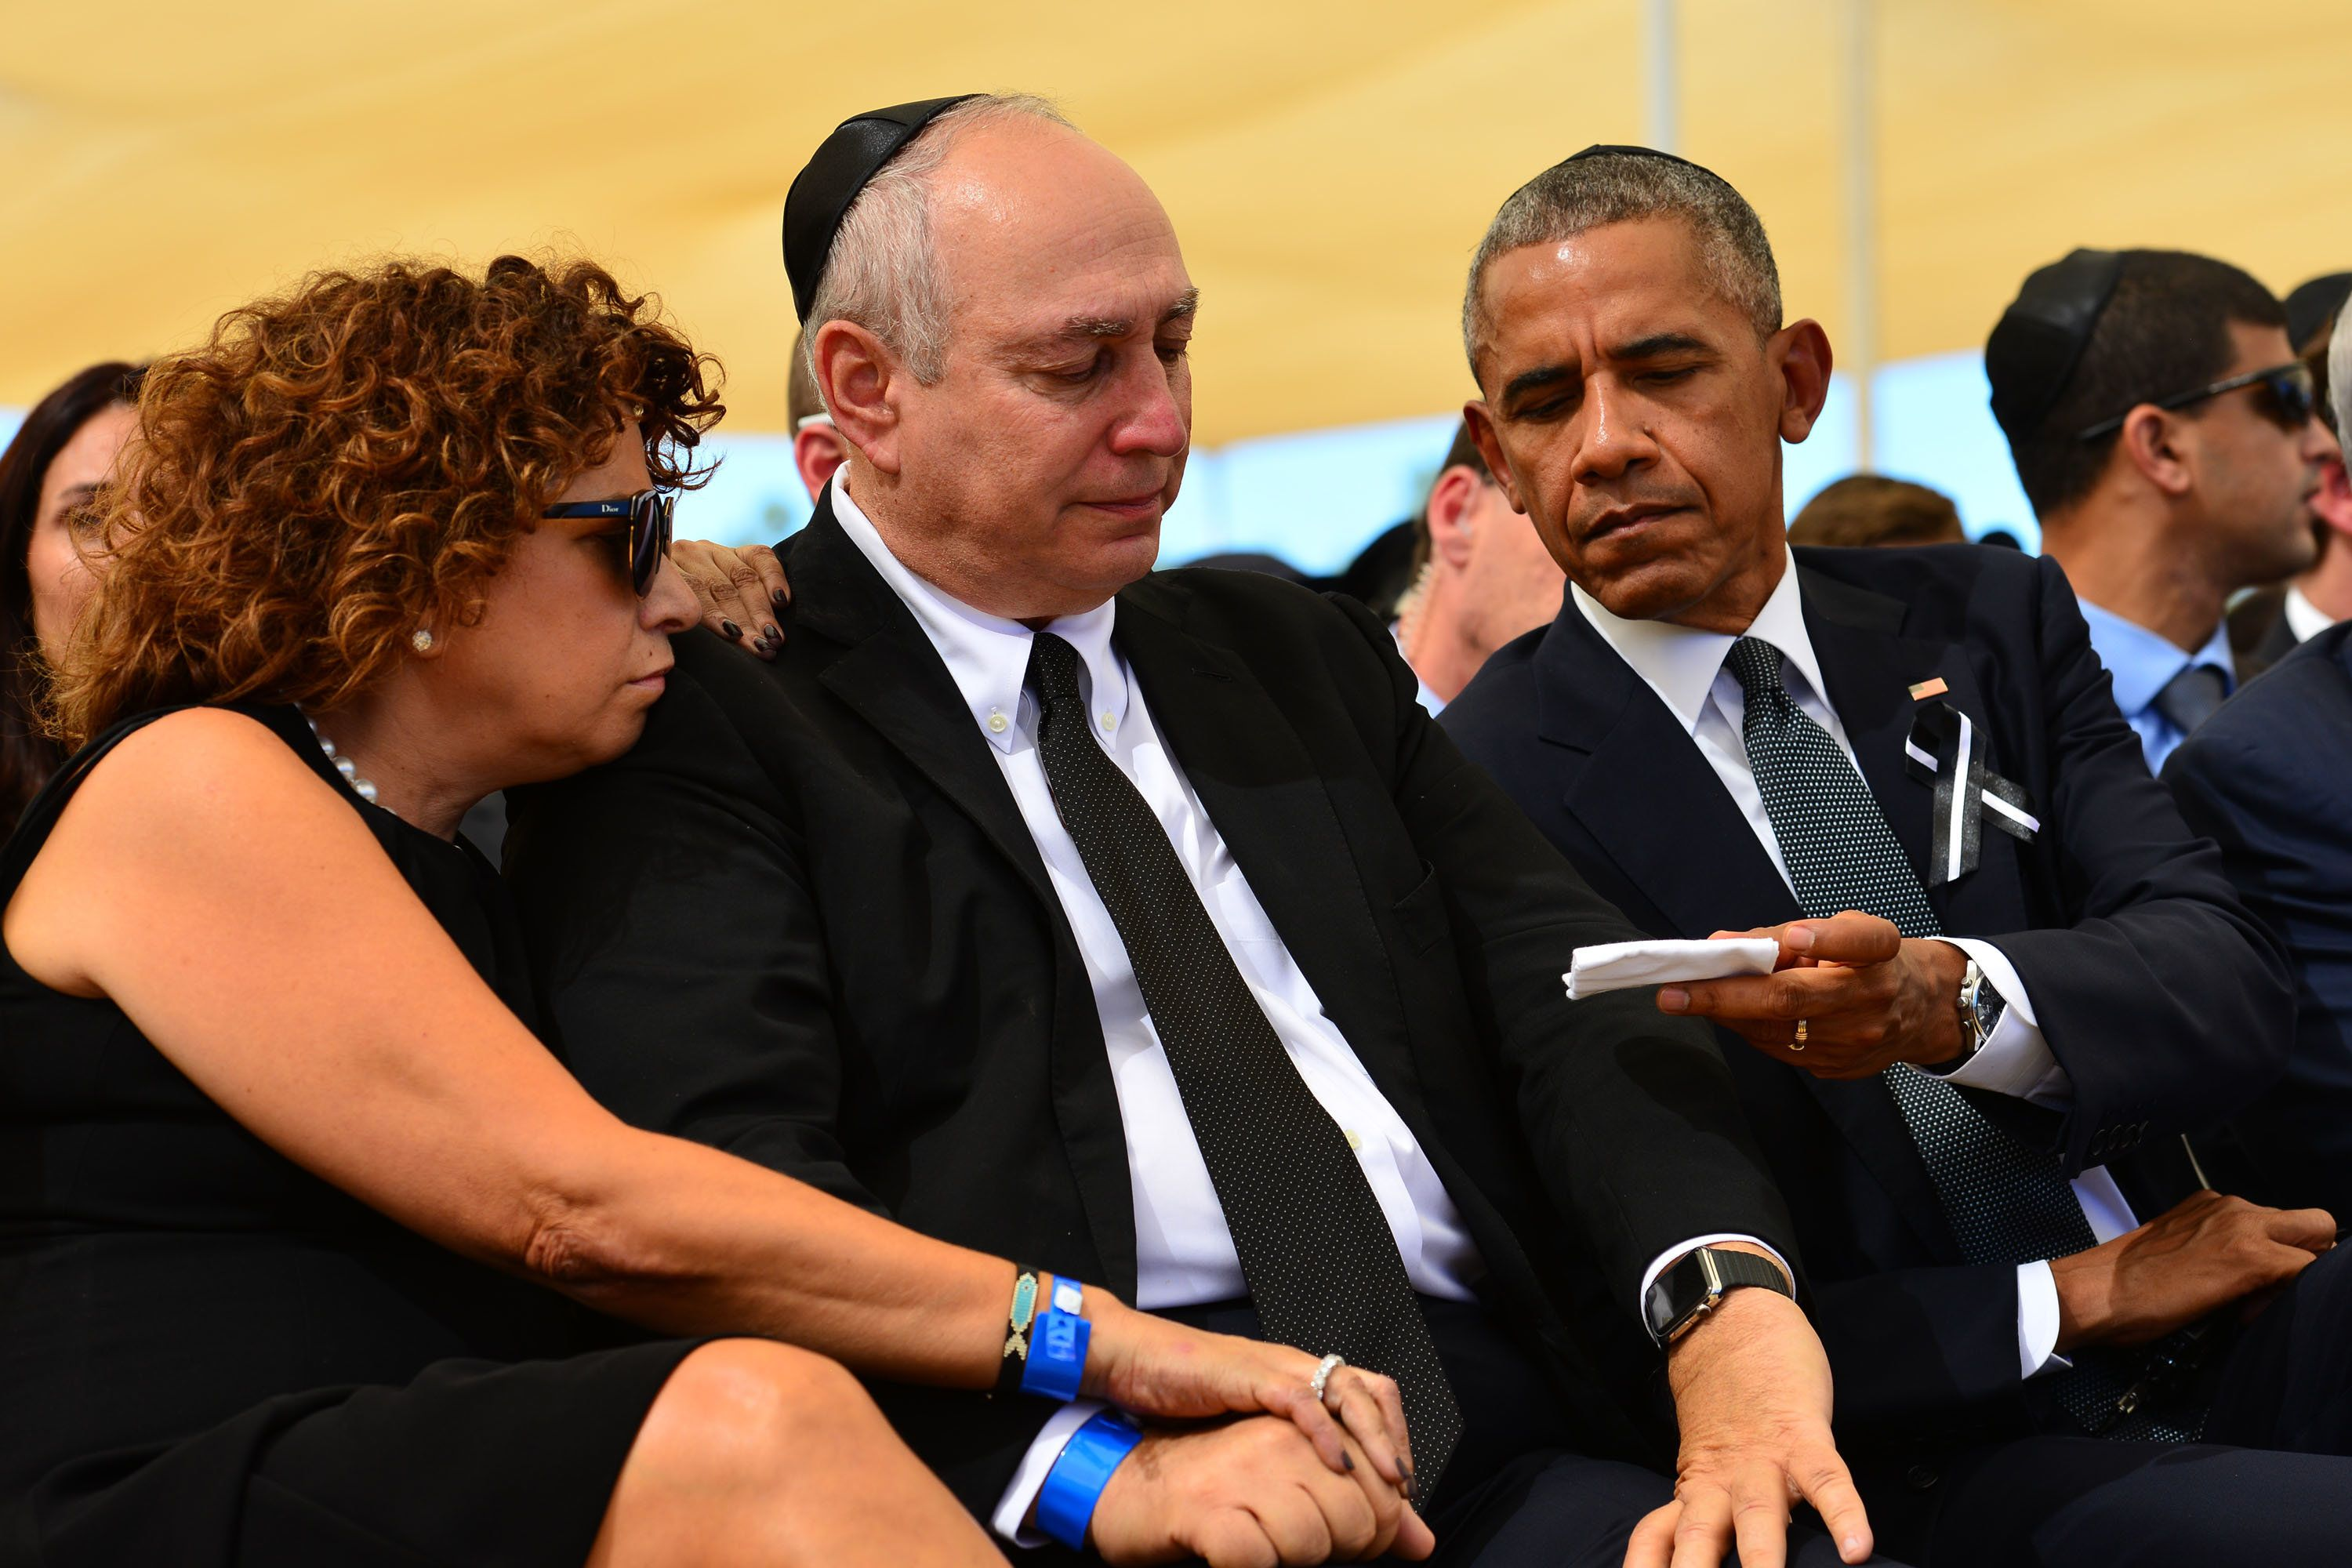 President Barack Obama sitting next toChemi Peres at Peres' father's funeral.